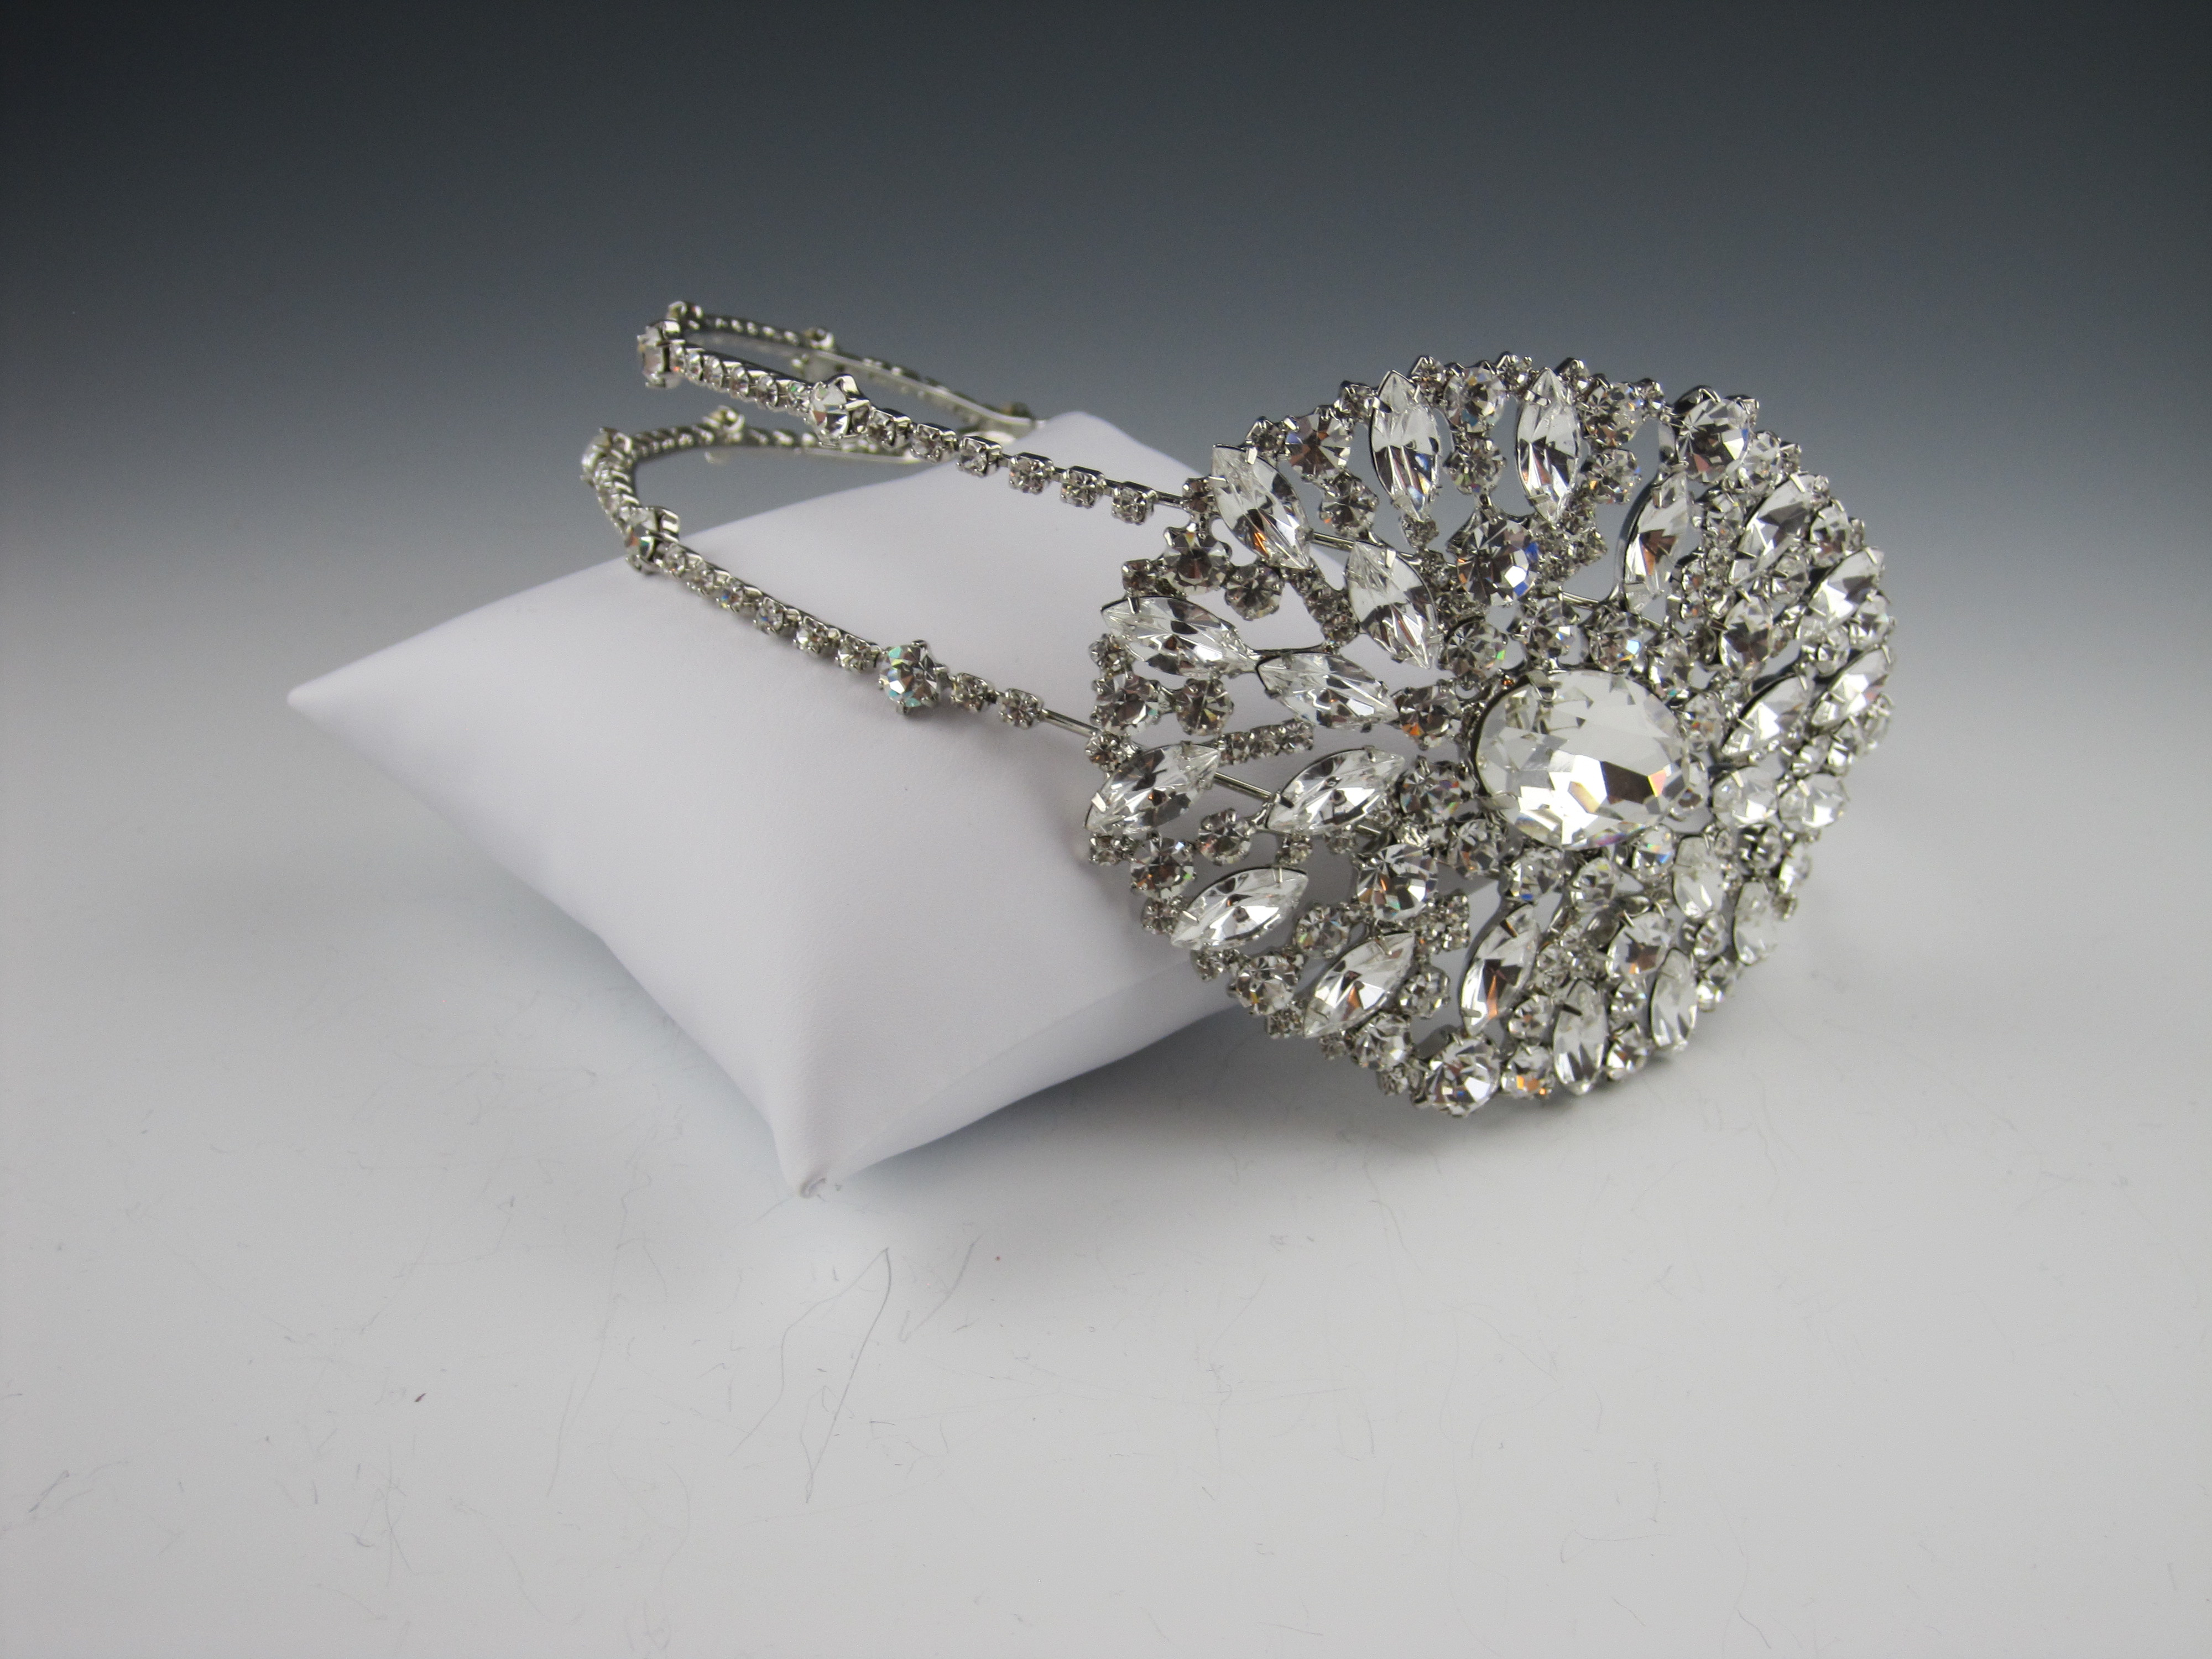 art deco bridal jewelry, glam double headband, art deco brooch, new york bridal accessories